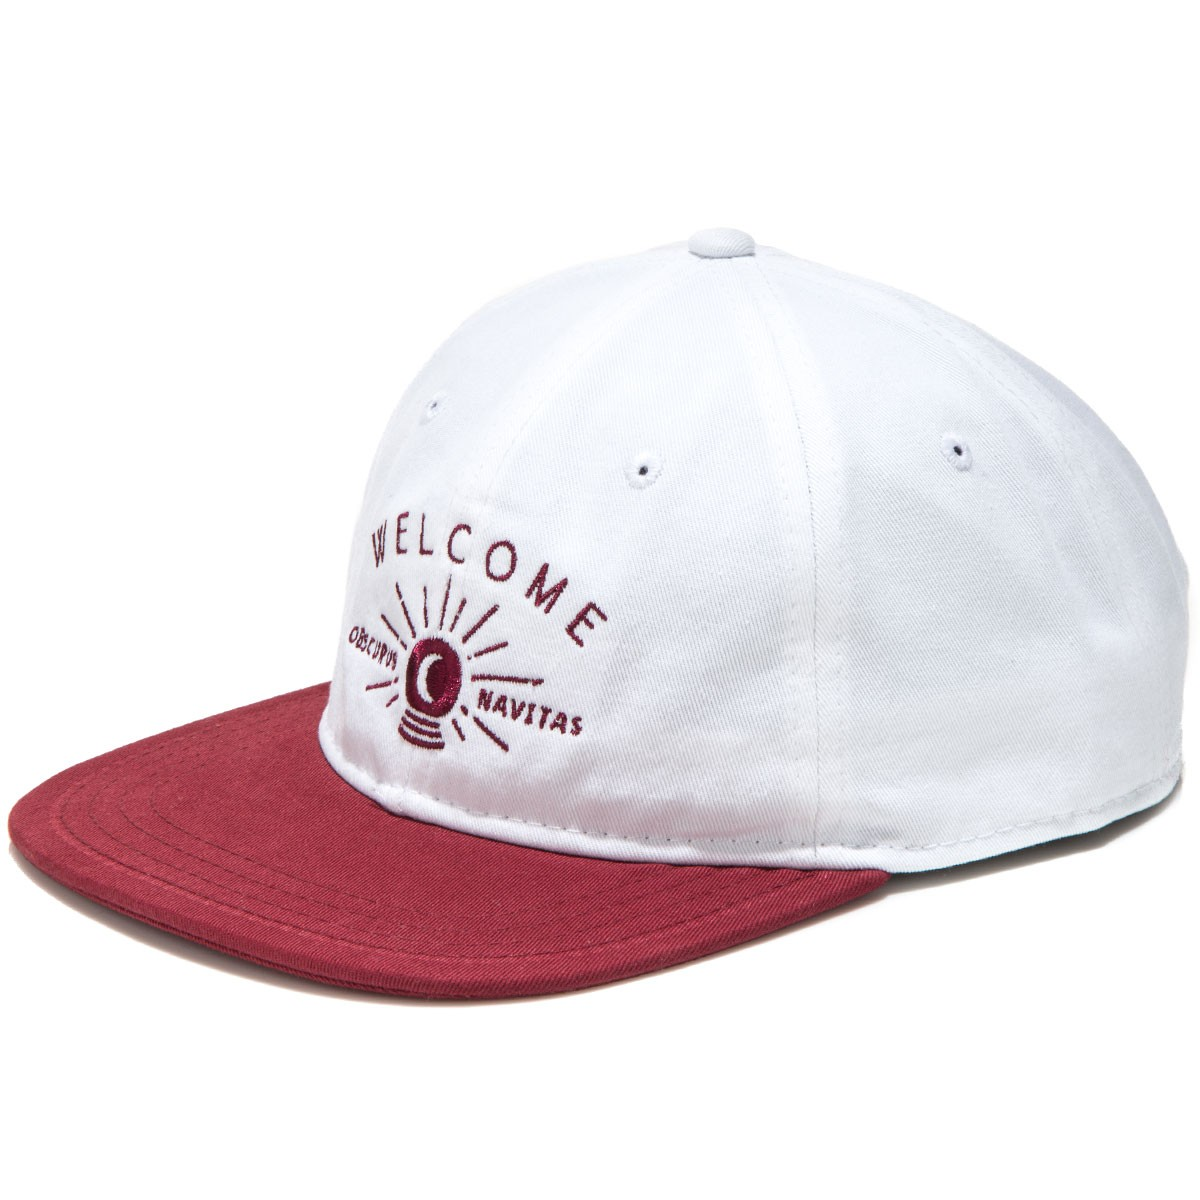 Welcome Dark Energy Unstructured 6-Panel Slider Hat - White/Maroon